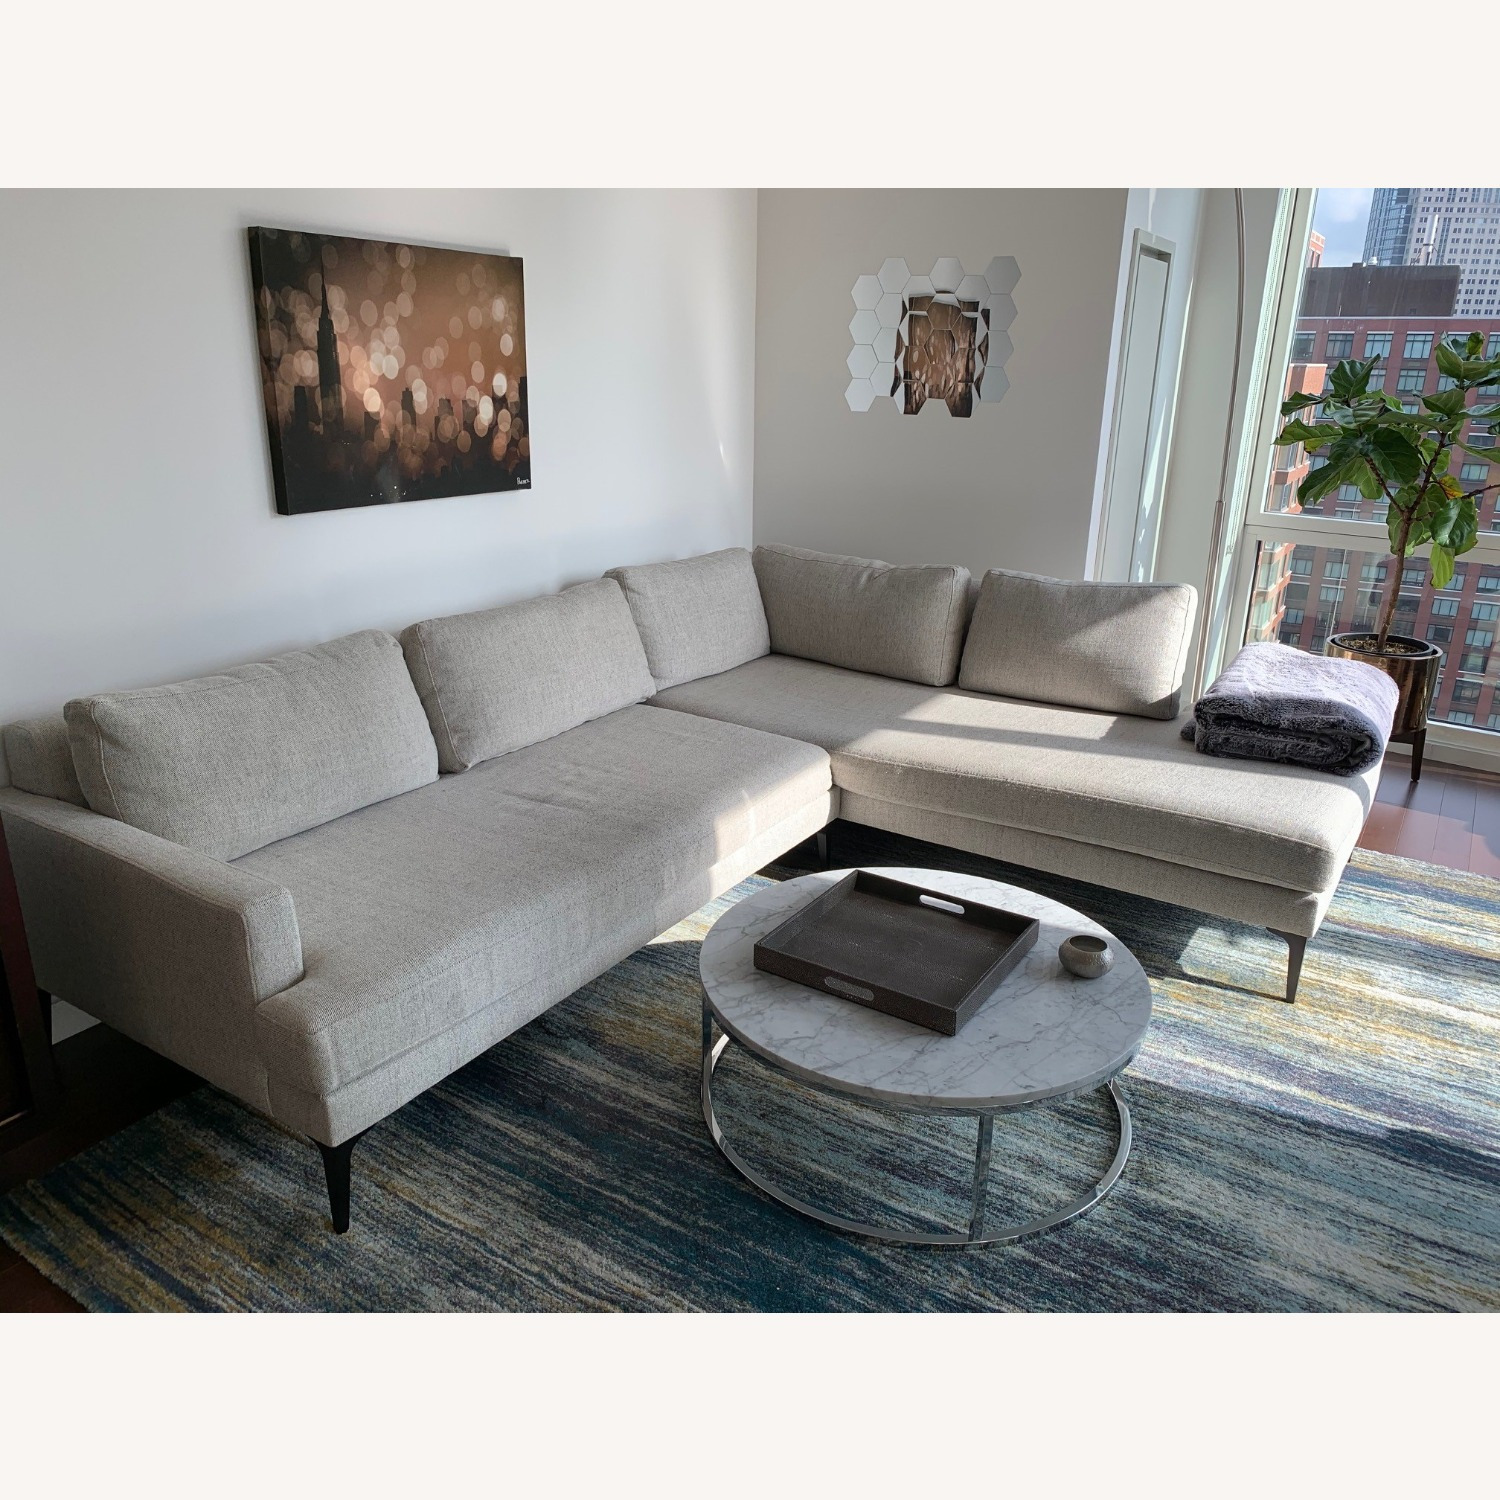 West Elm Grey Andes Right 2-Piece Chaise Sectional - image-1